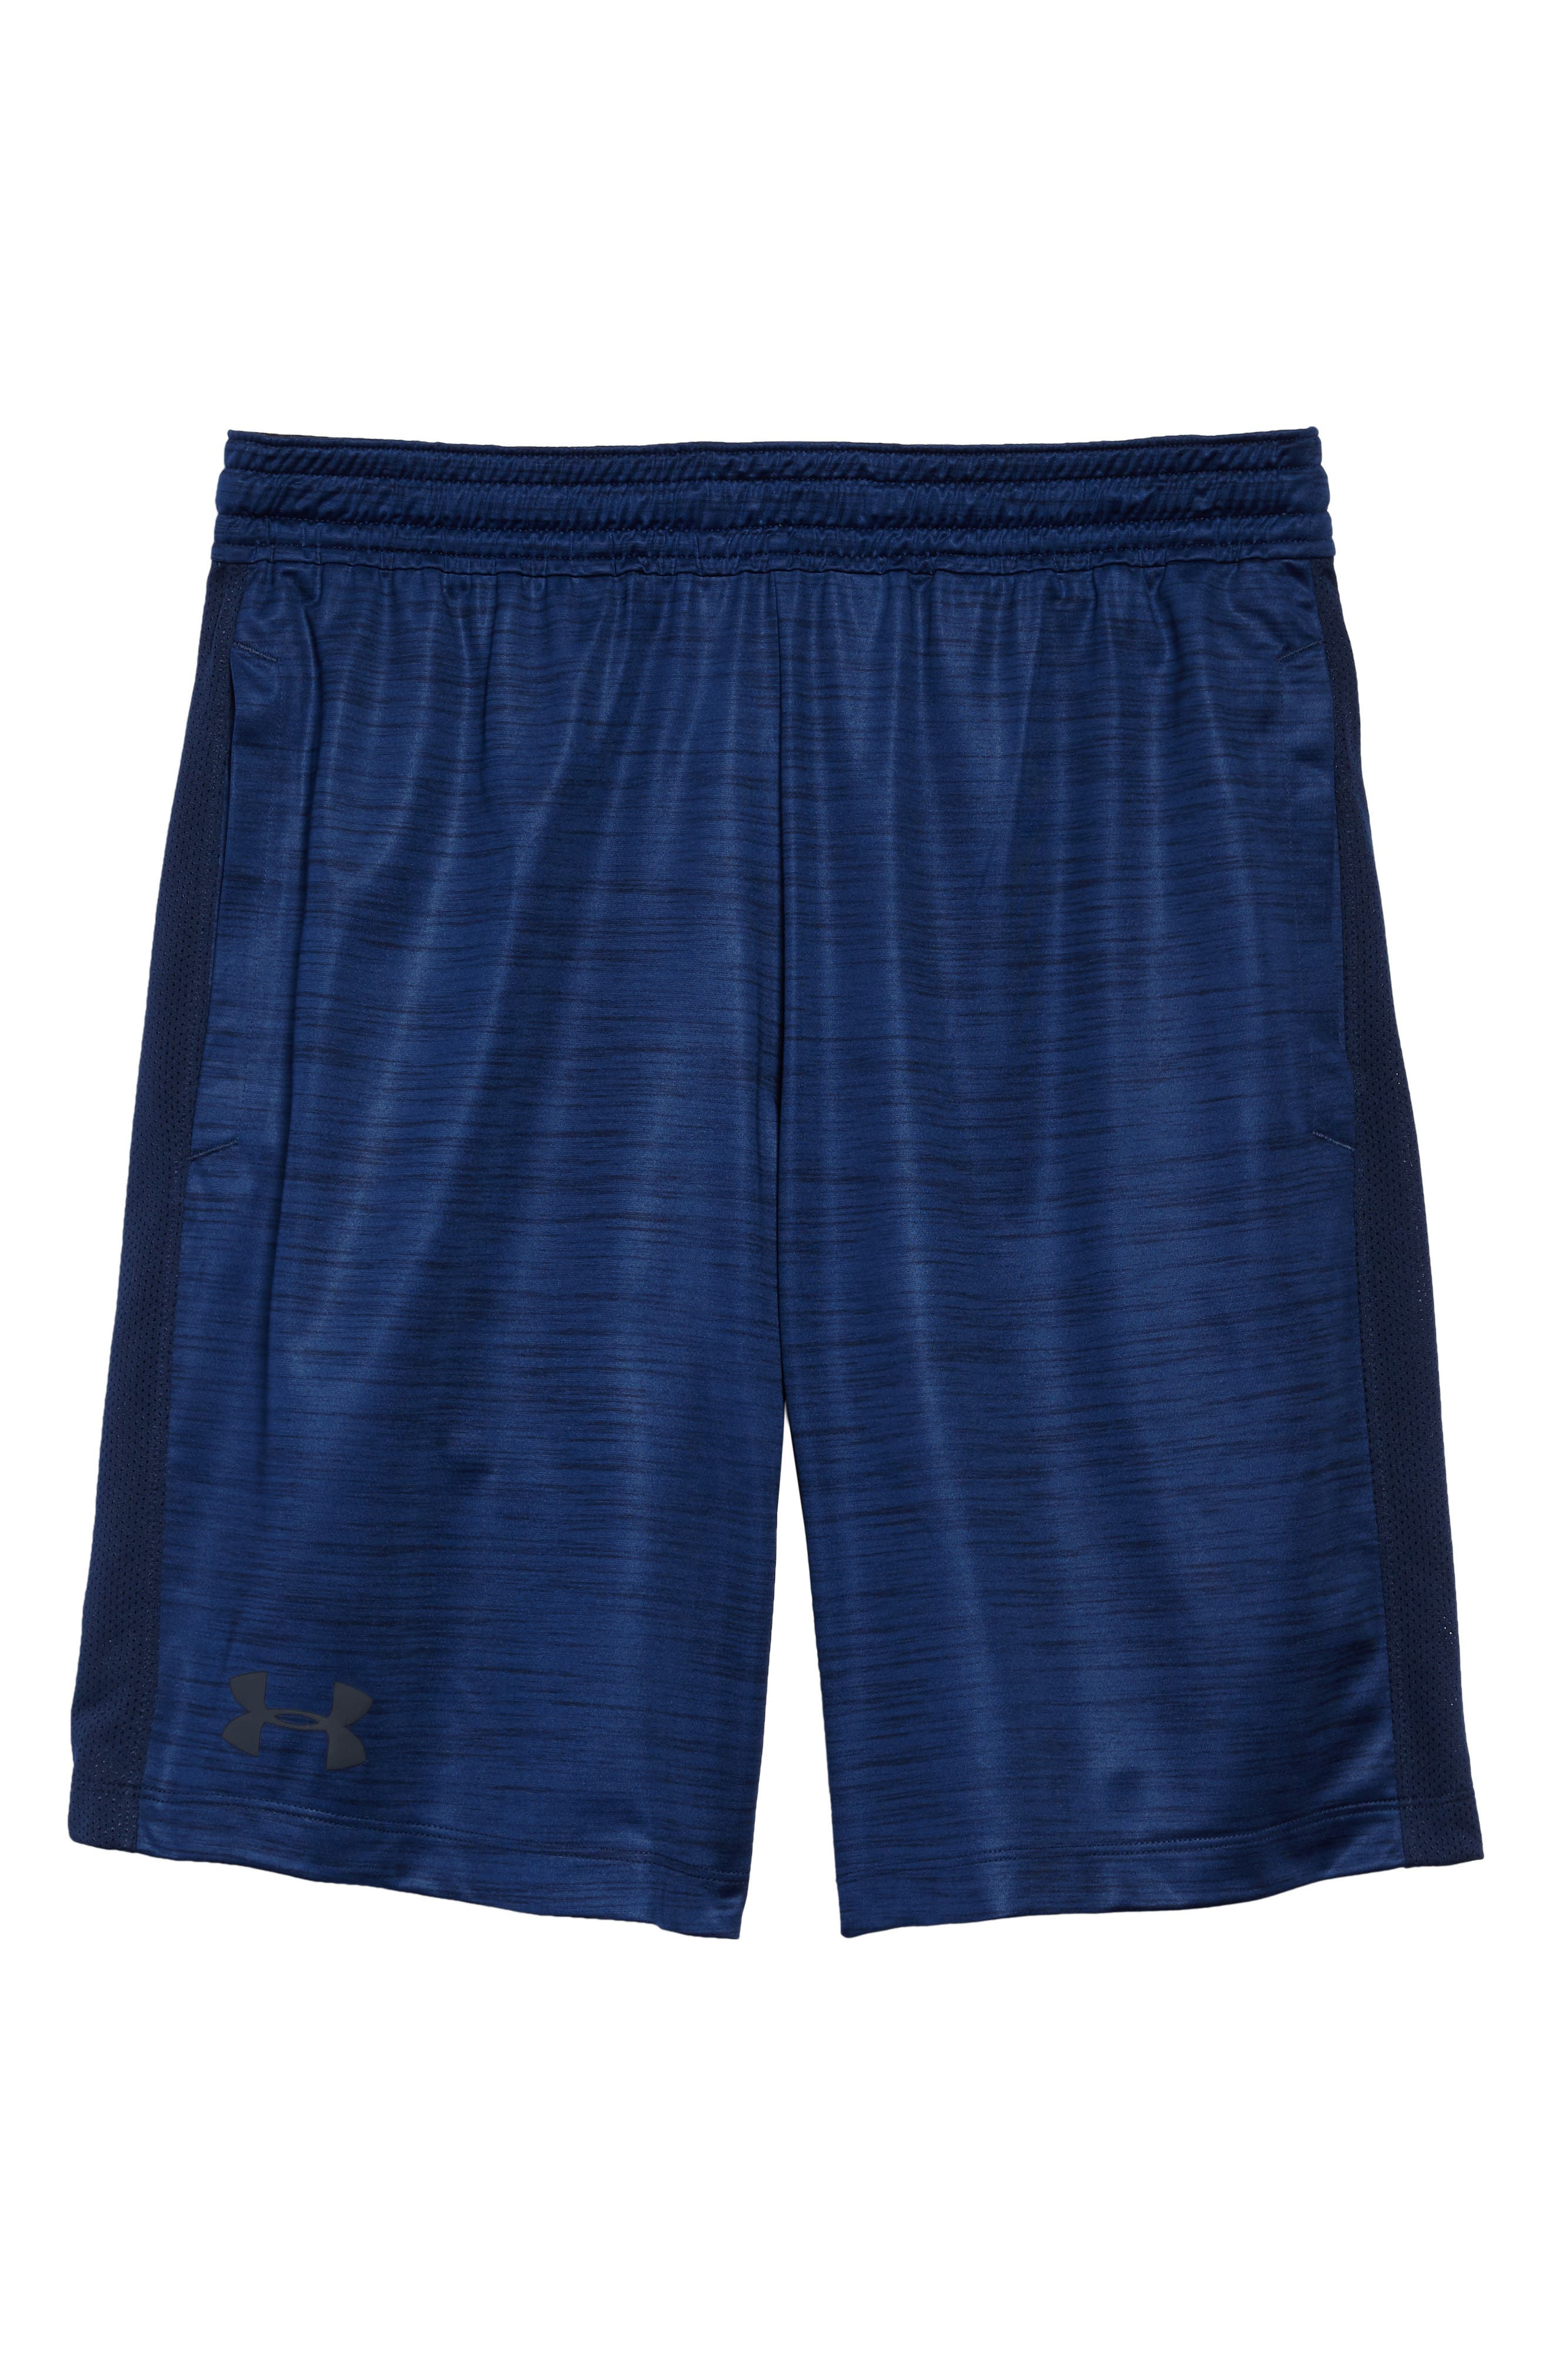 MK1 Twist Shorts,                             Alternate thumbnail 6, color,                             Academy/ Stealth Greh